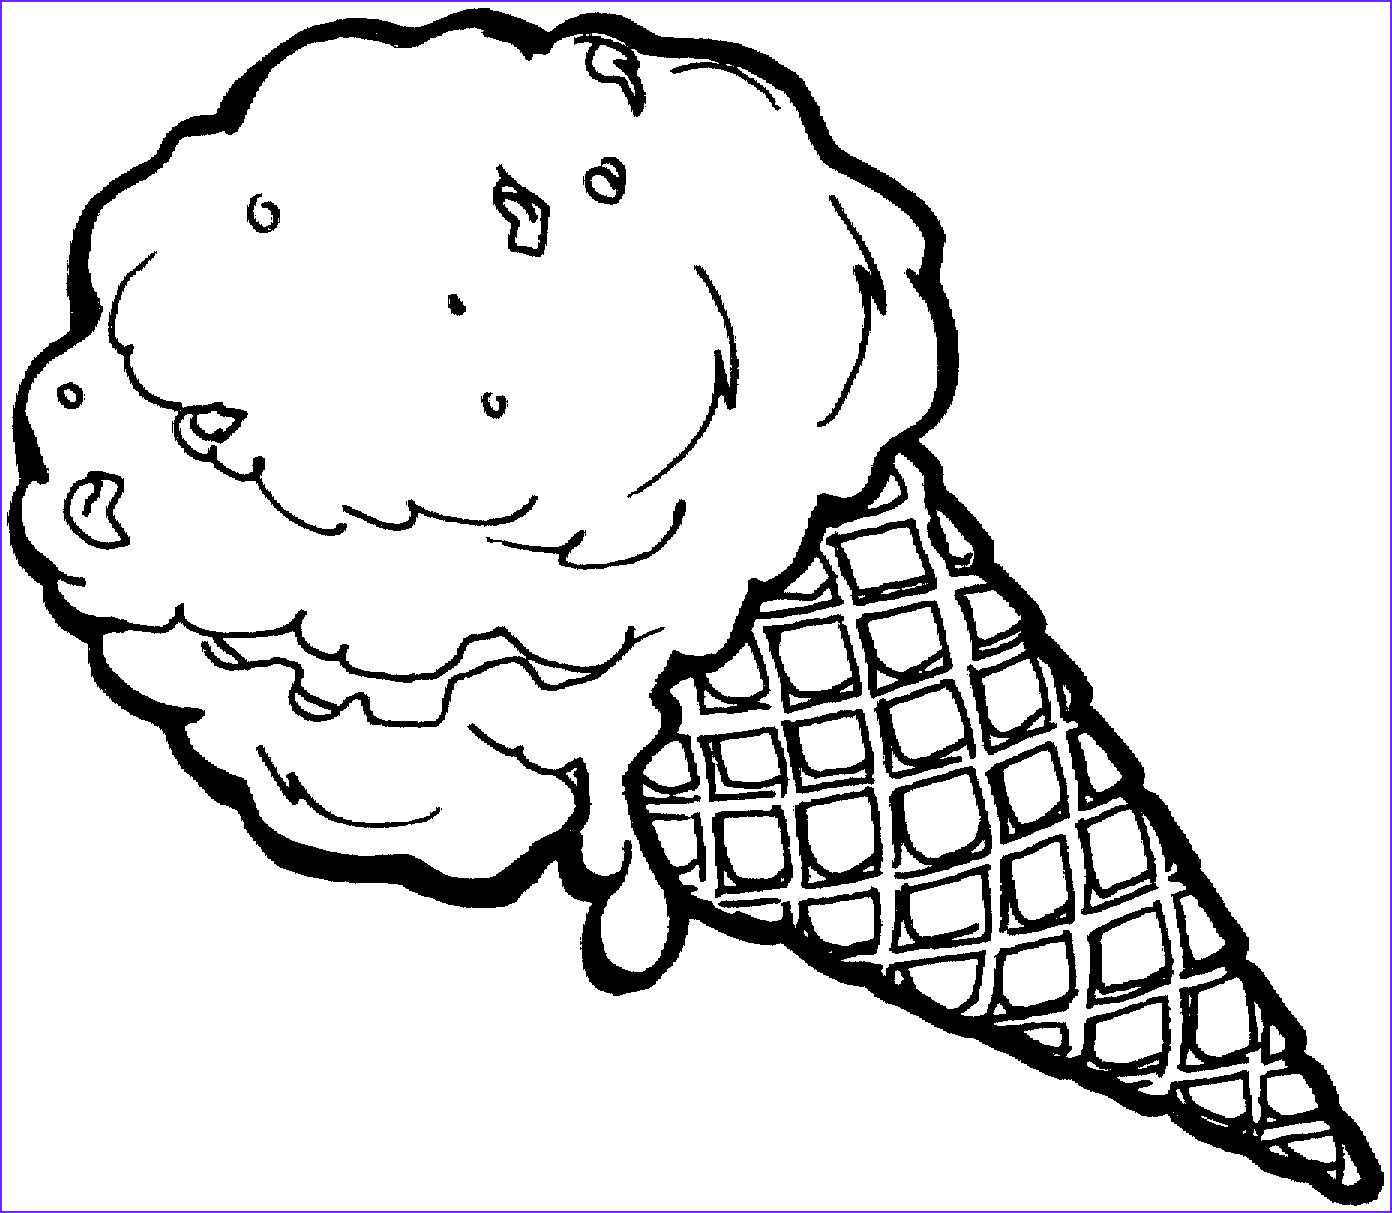 Icecream Cone Coloring Pages Elegant Image Free Printable Ice Cream Coloring Pages for Kids